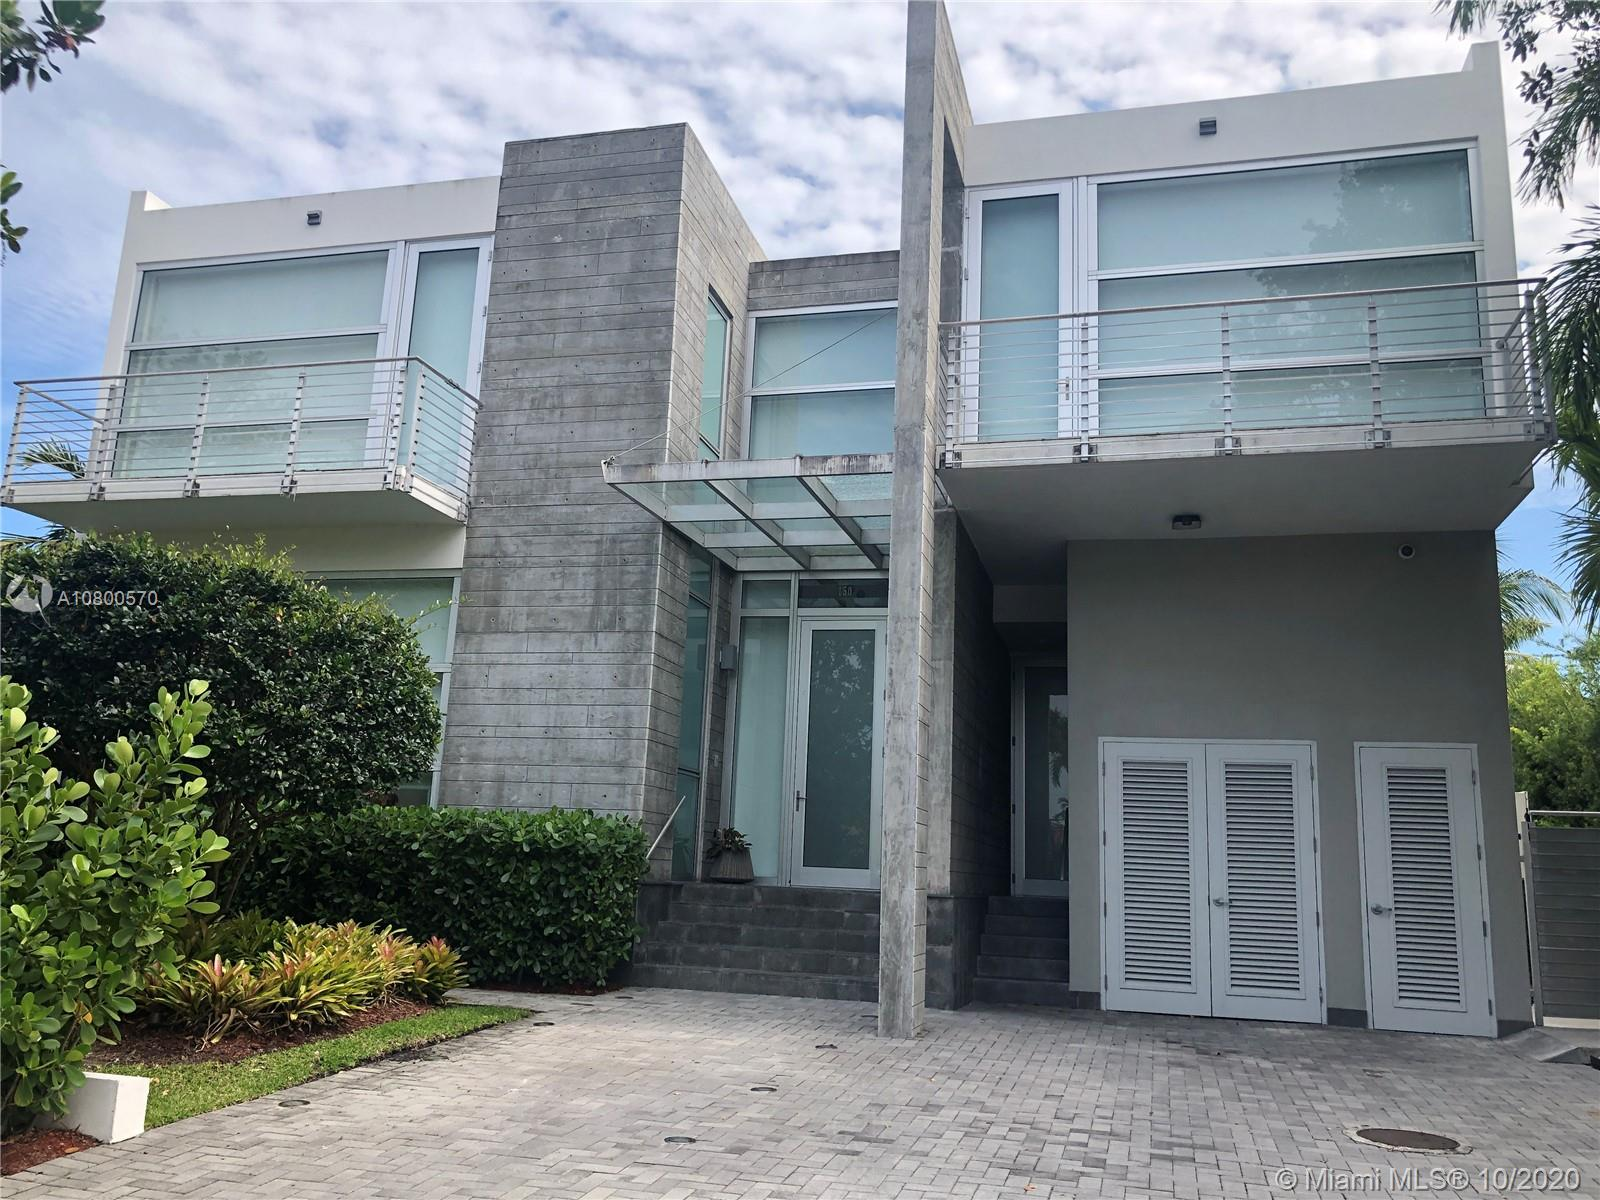 This beautiful contemporary 5/5.1 house in one of the best streets of KB features floor-to-ceiling impact windows with automated shades and blackouts. Marble and wood flooring, Mia Cuccina kitchen with top of the line appliances, German bathroom fixtures, Toto automated toilets and camera system. The covered terrace/BBQ area overlooks the waterfall/hot tub & pool surrounded by a lighted & sprinklered landscaping. A must see!